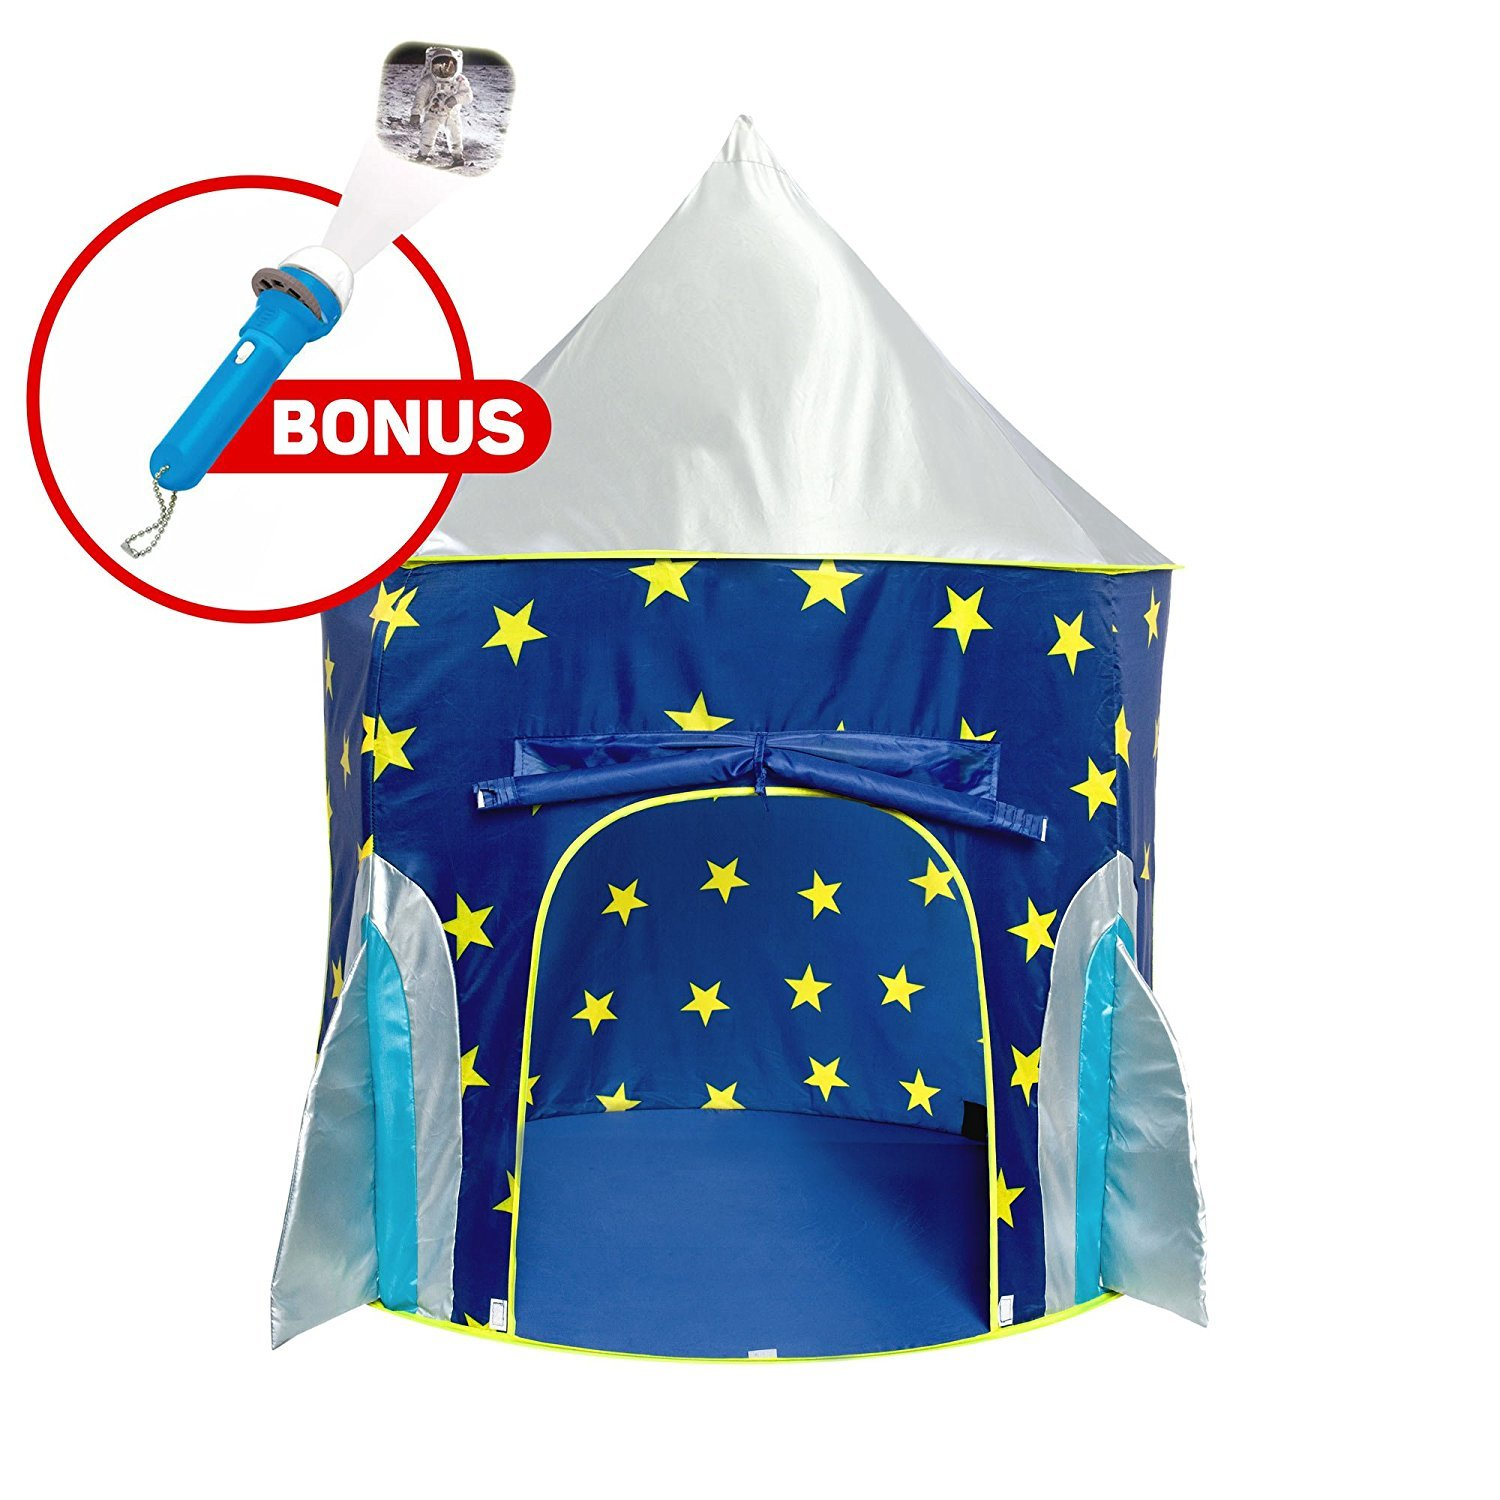 Rocket Ship Play Tent - Spaceship Playhouse for Kids with Bonus Space Torch Projector Toy u2013  sc 1 st  Amazon.com & Amazon.com: Play Tents u0026 Tunnels: Toys u0026 Games: Play Tents Play ...